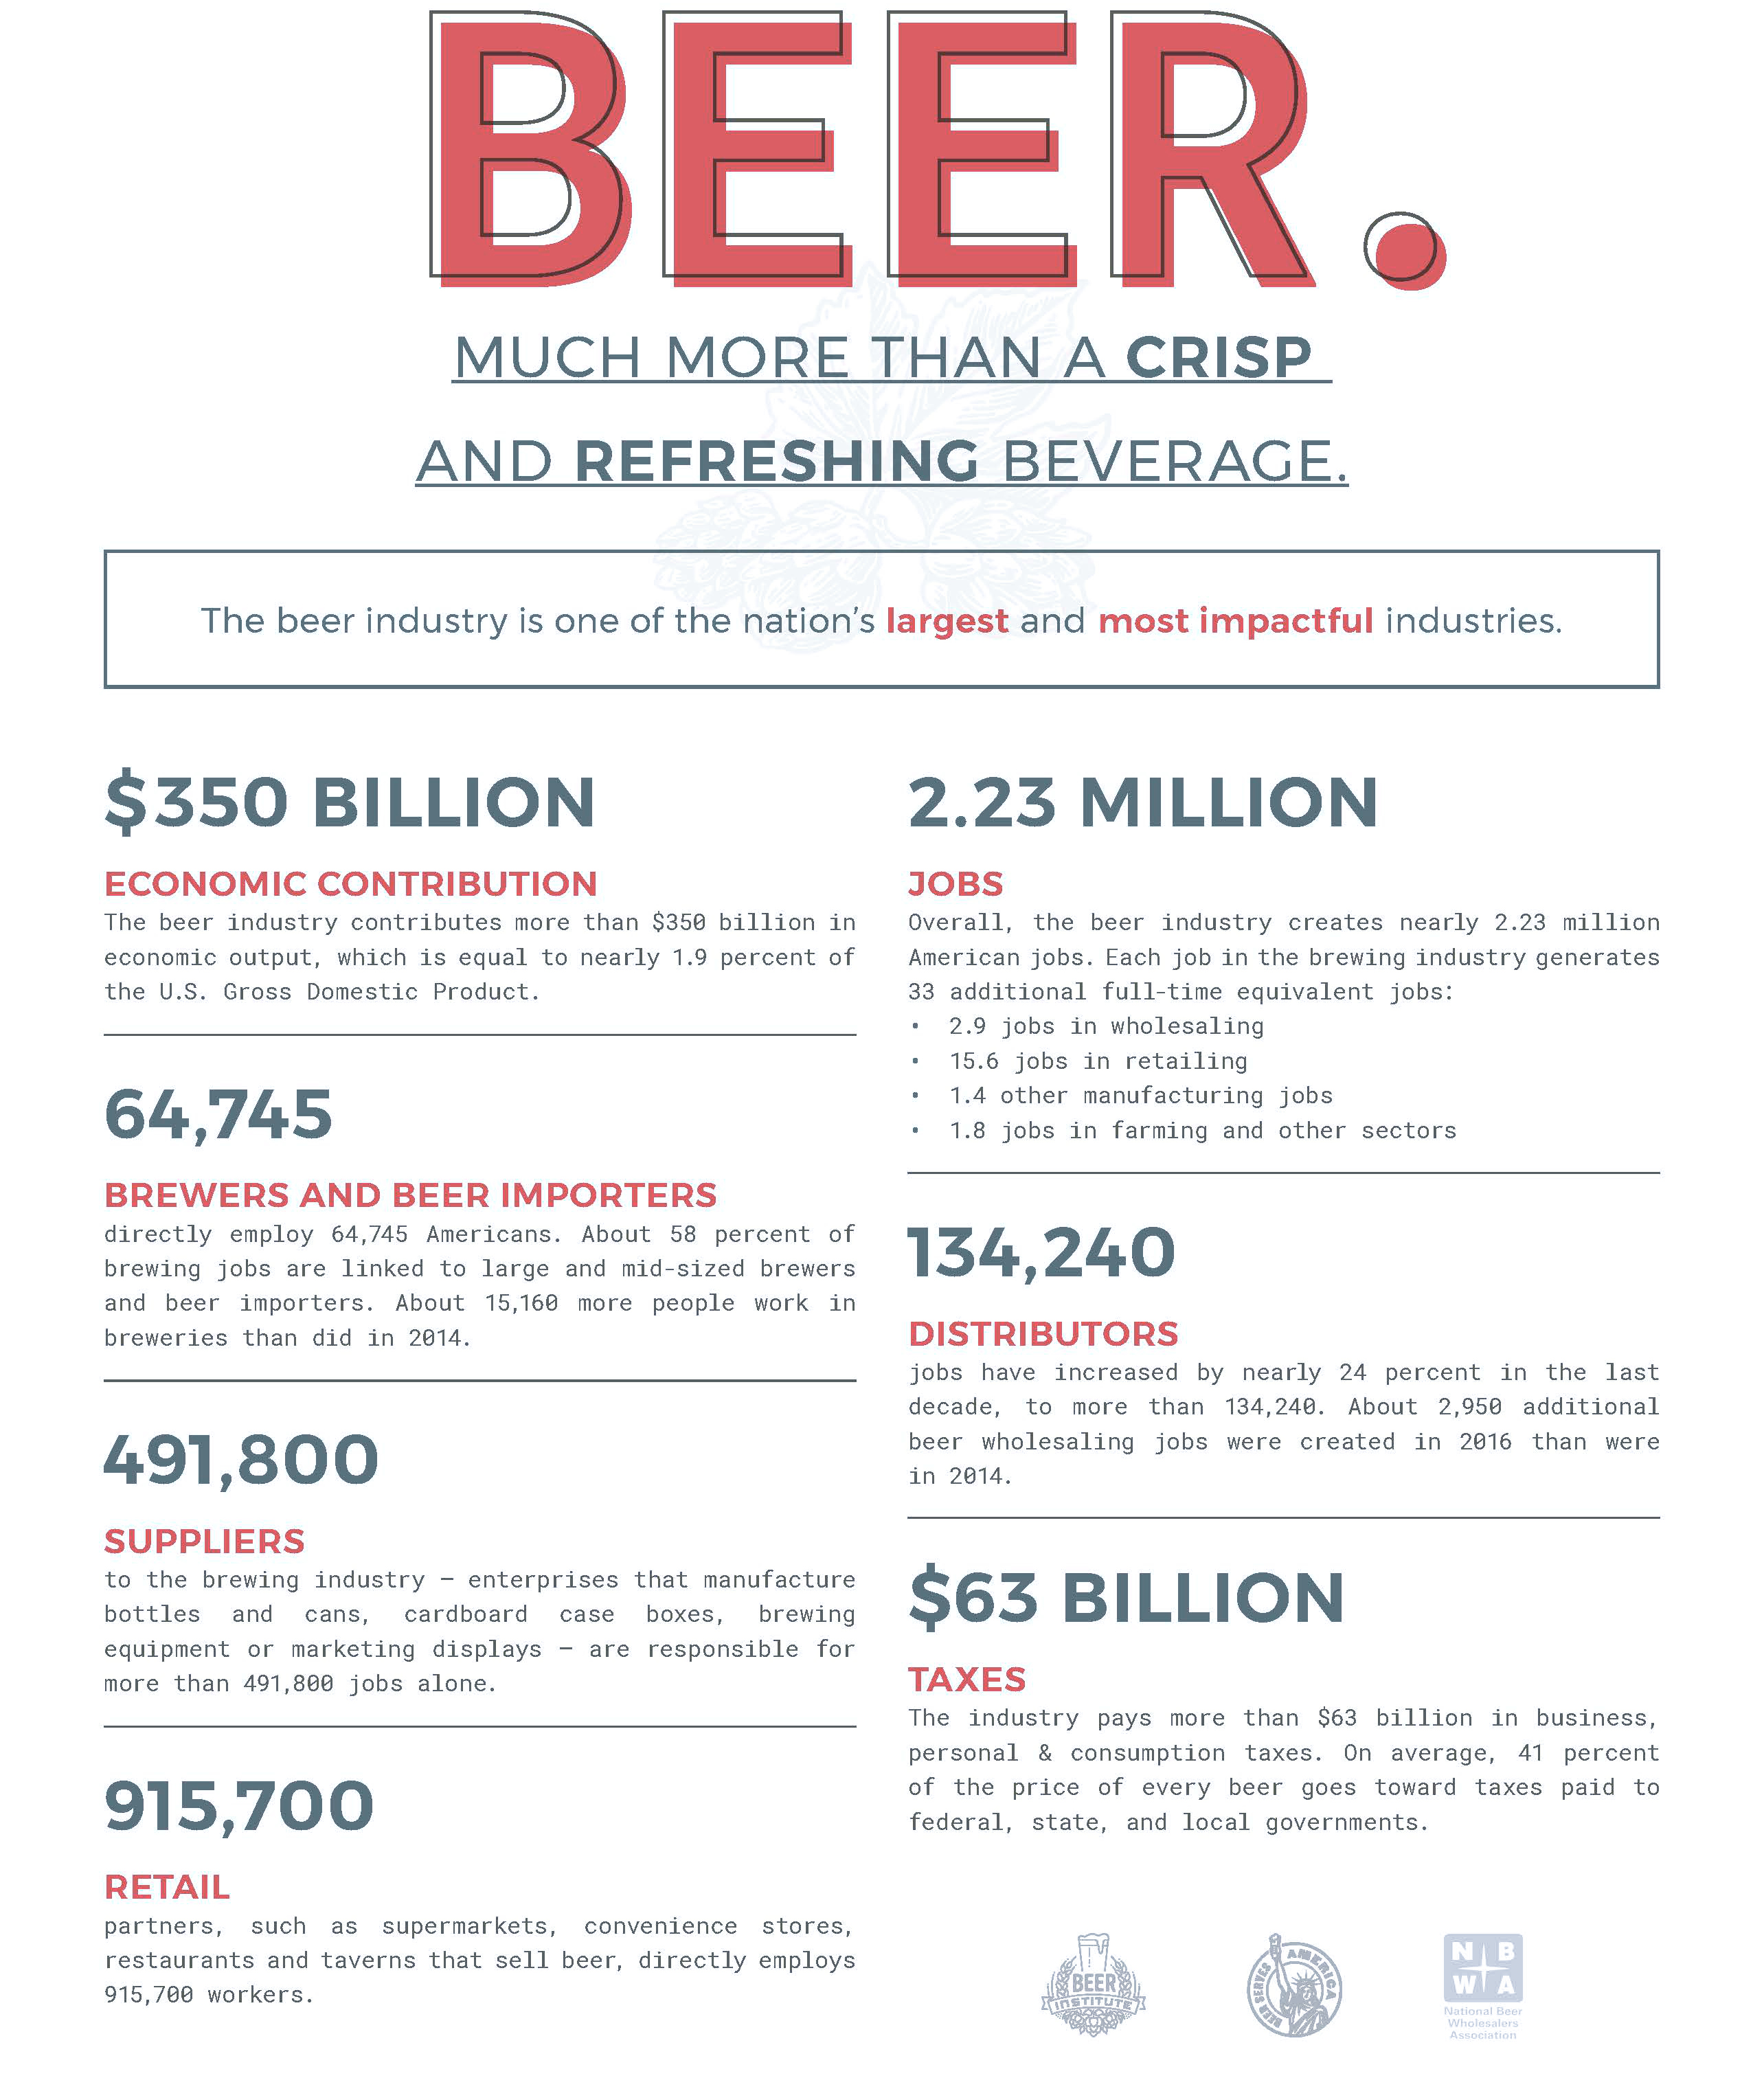 Beer Serves America Infographic